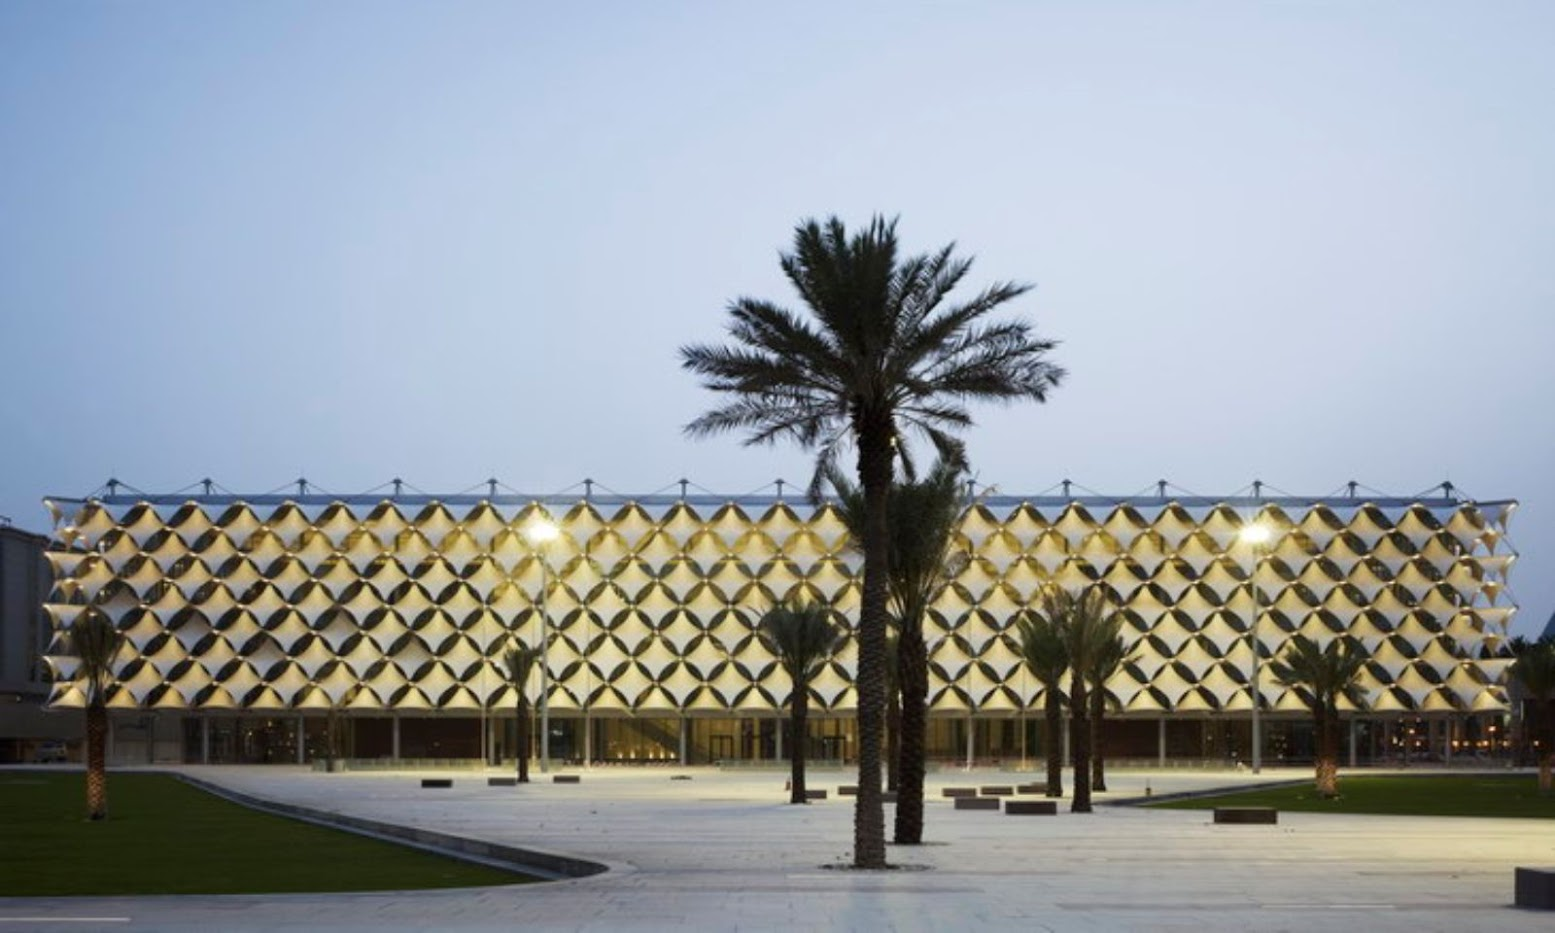 Riyad Arabia Saudita: [COMPLETED THE KING FAHAD NATIONAL LIBRARY BY GERBER ARCHITEKTEN]